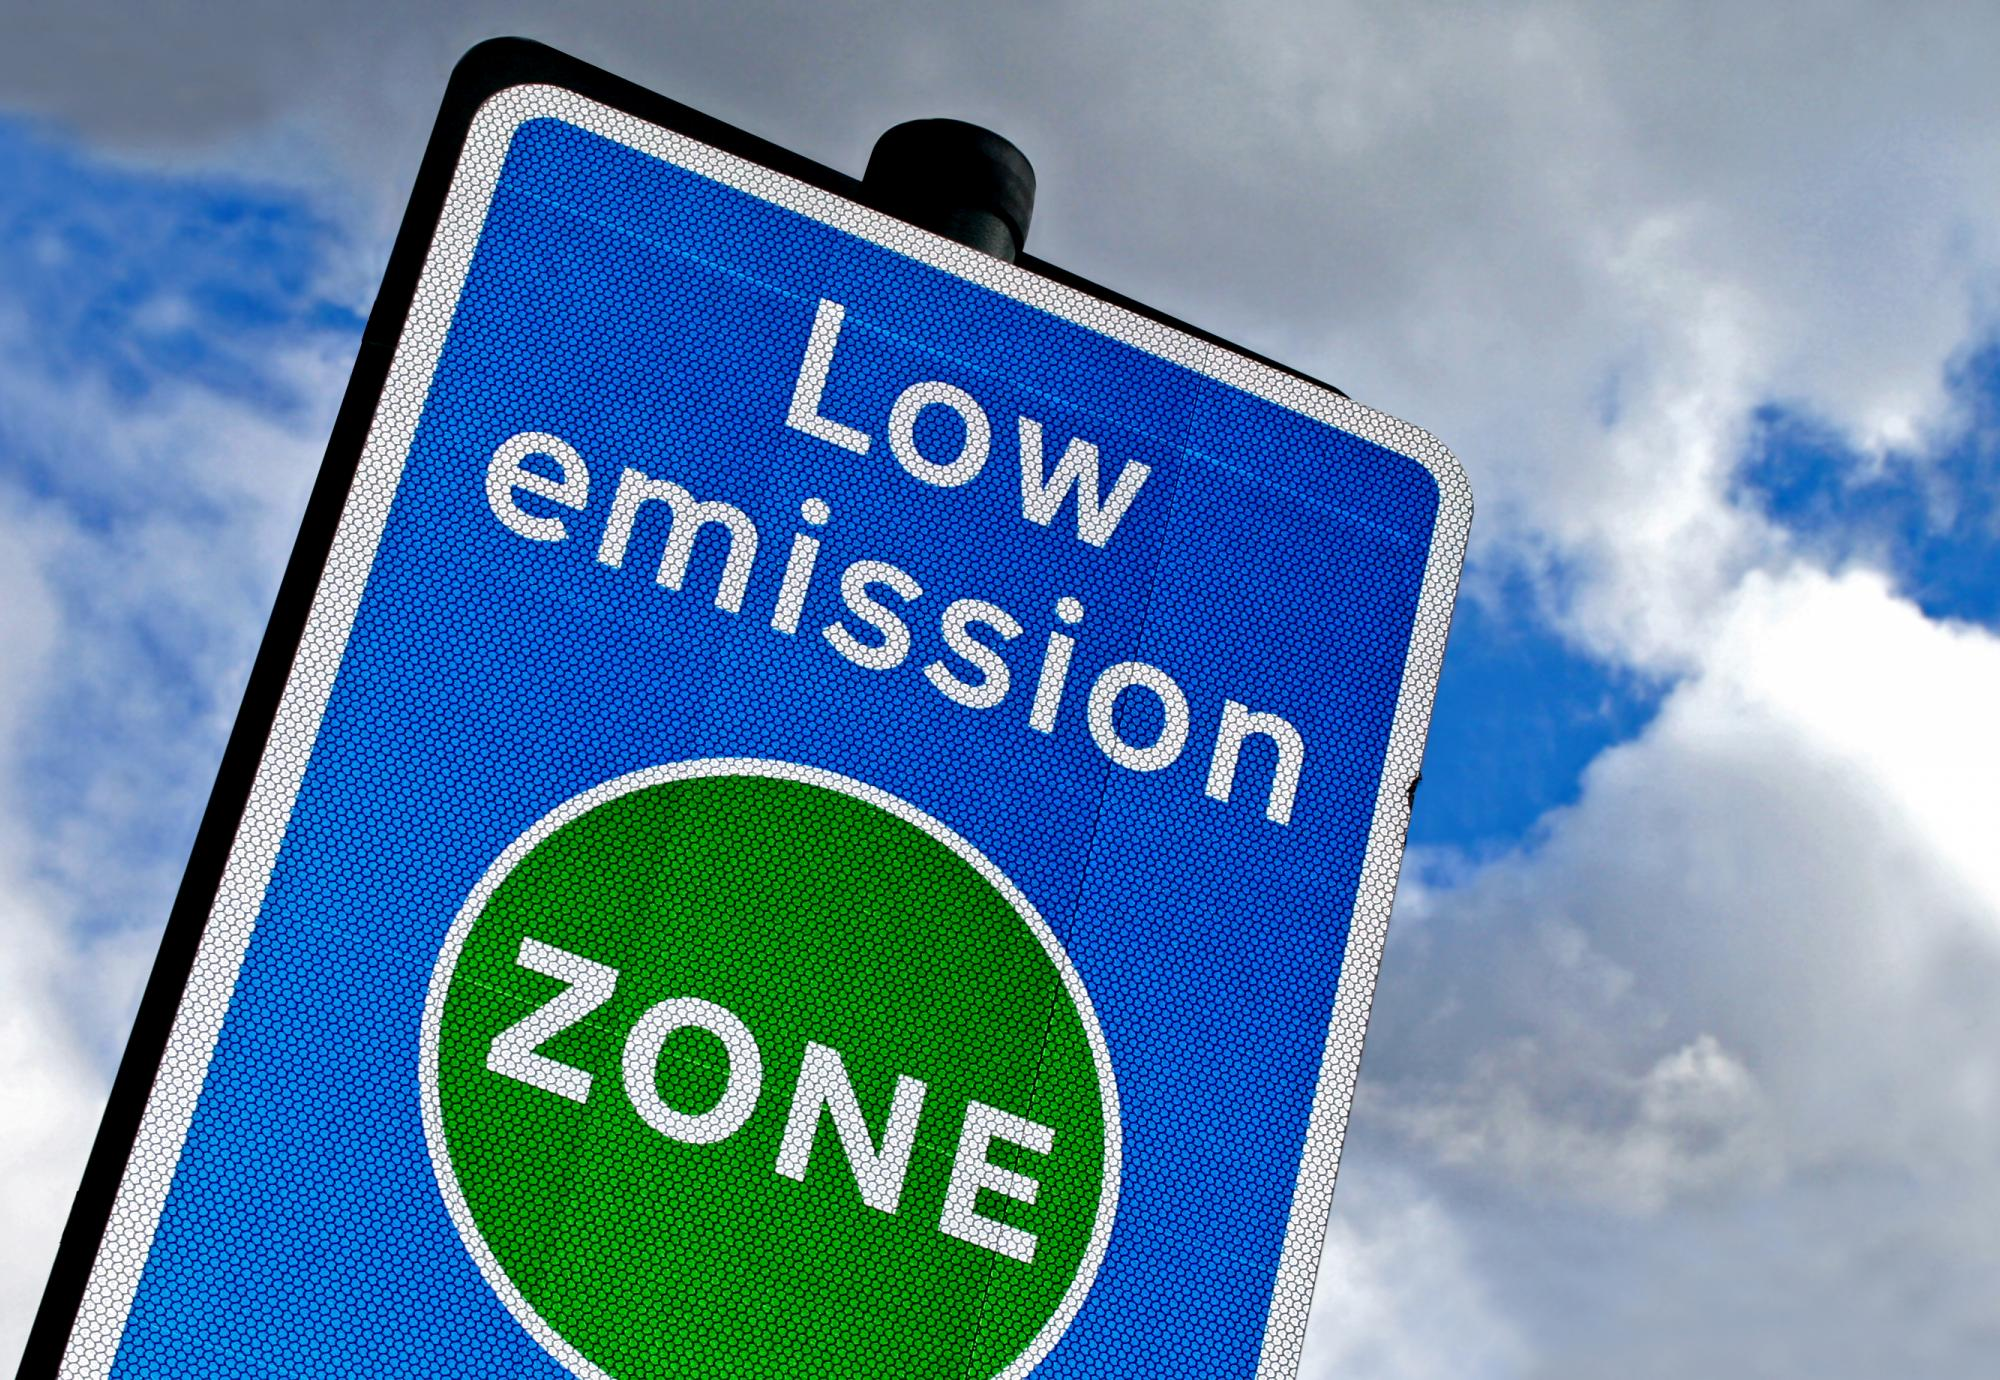 Low emissions zone sign.